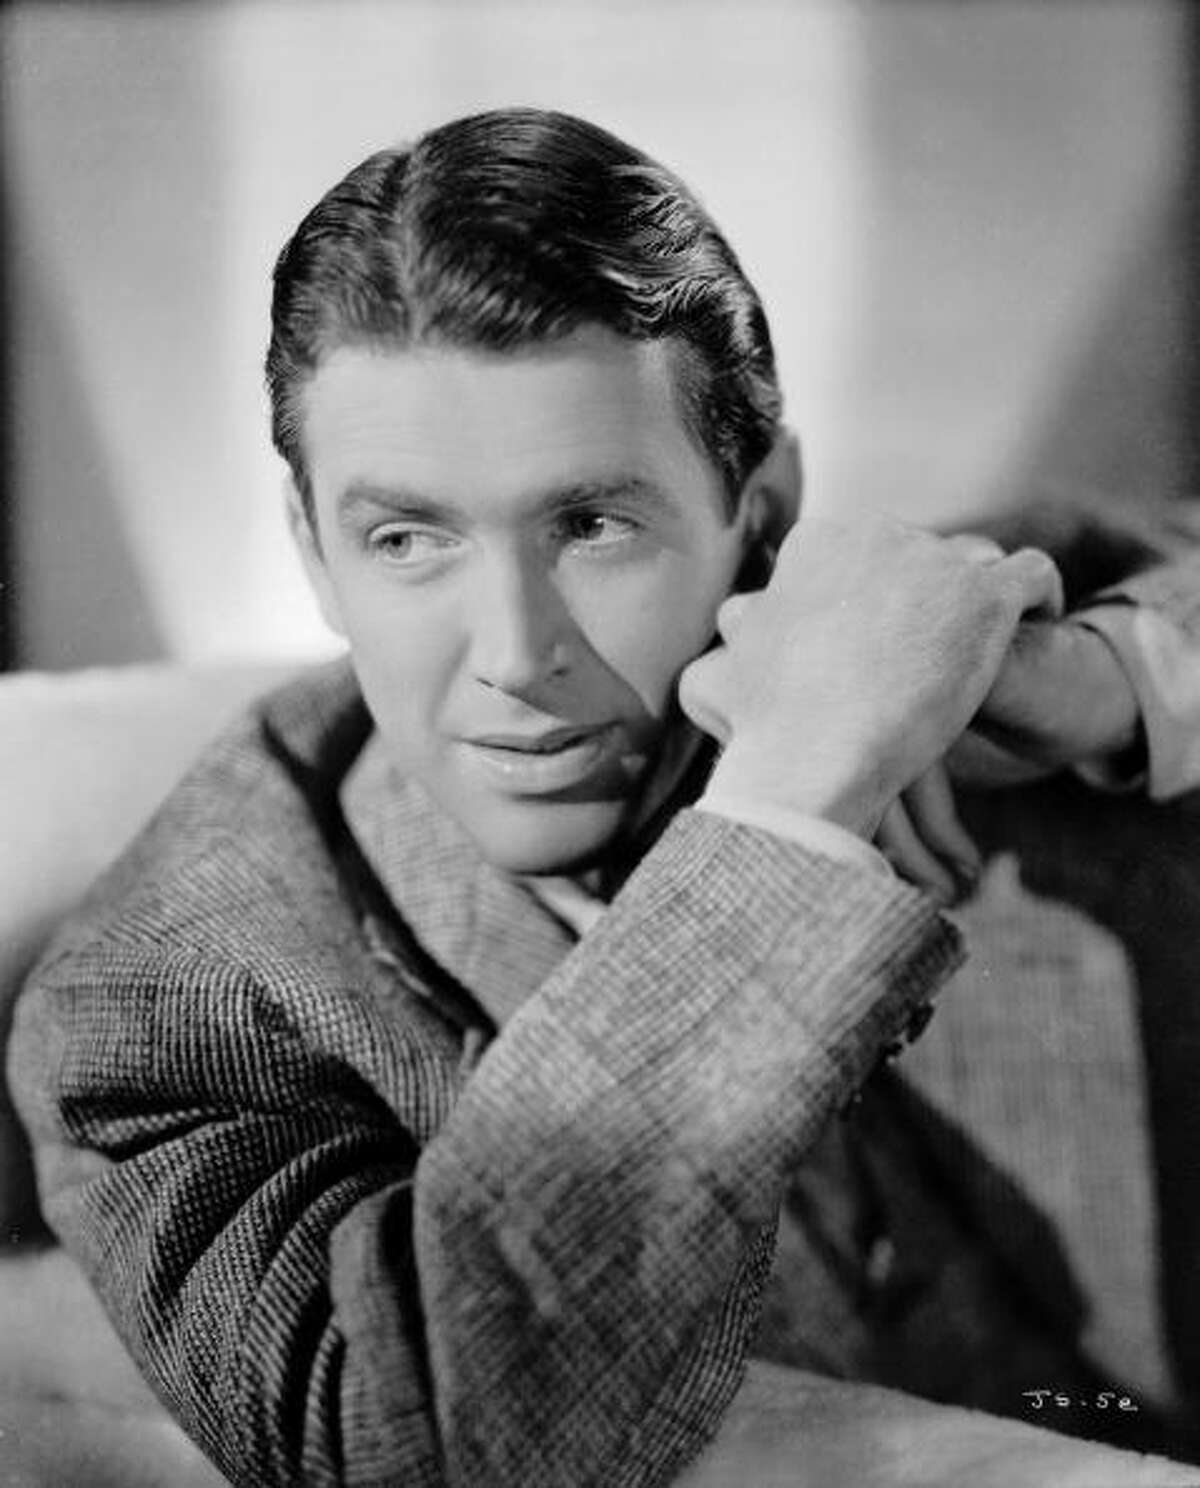 Jimmy Stewart Stewart enlisted in the Navy before Pearl Harbor. He went on to fly missions over Nazi Germany, bombing factories and flying in the Battle of Berlin. After the war, he served an additional 22 years in the Air Force Reserve, retiring in 1968.